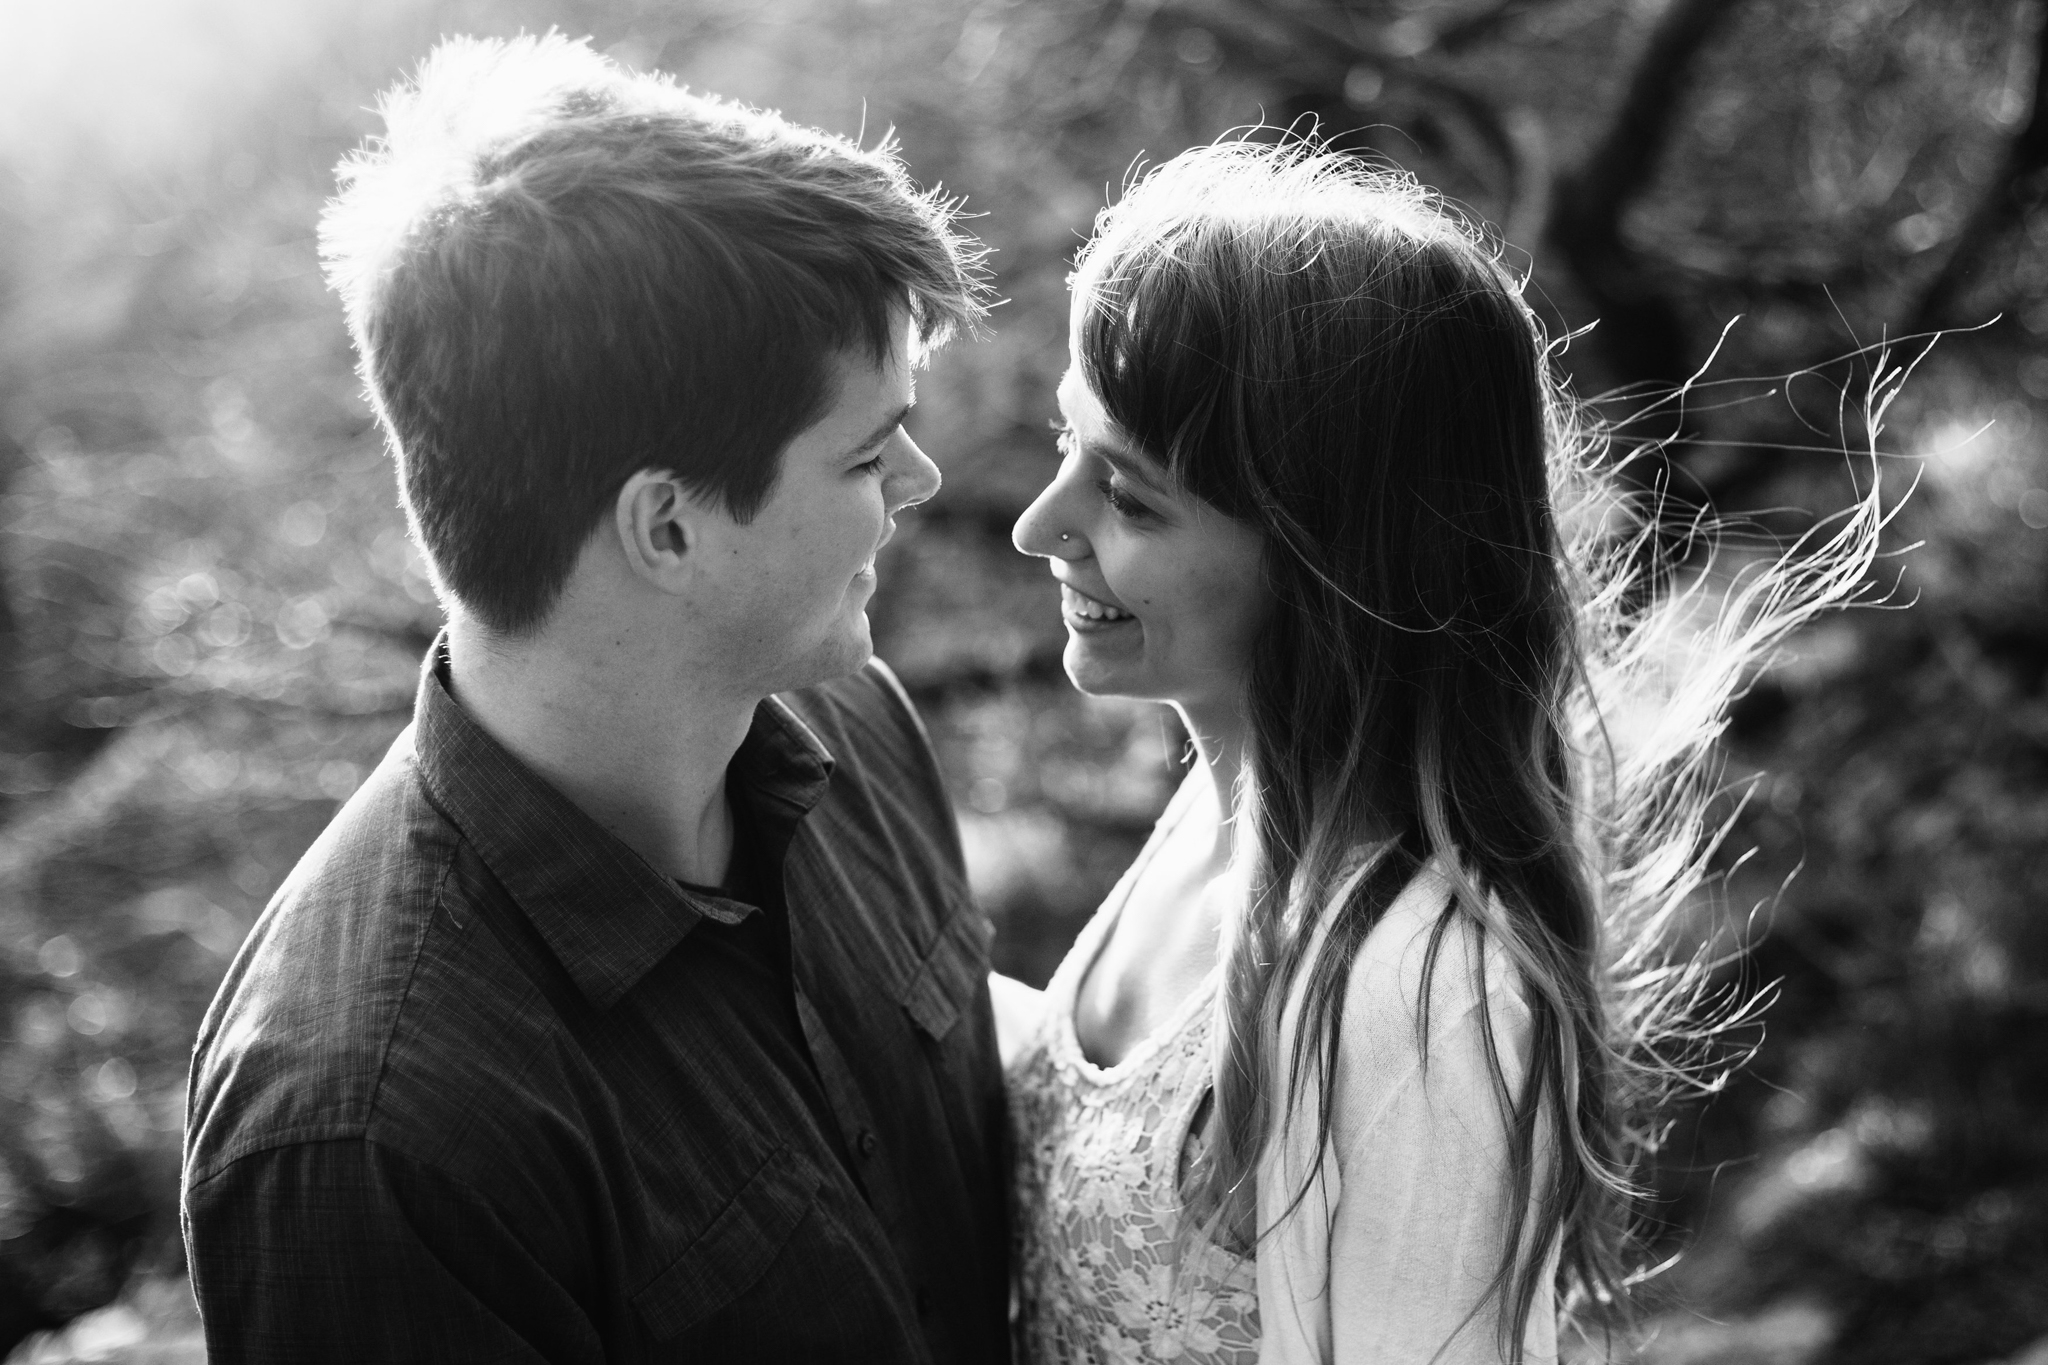 Vancouver Whytecliff Park Engagement Photographer - Emmy Lou Virginia Photography-19.jpg